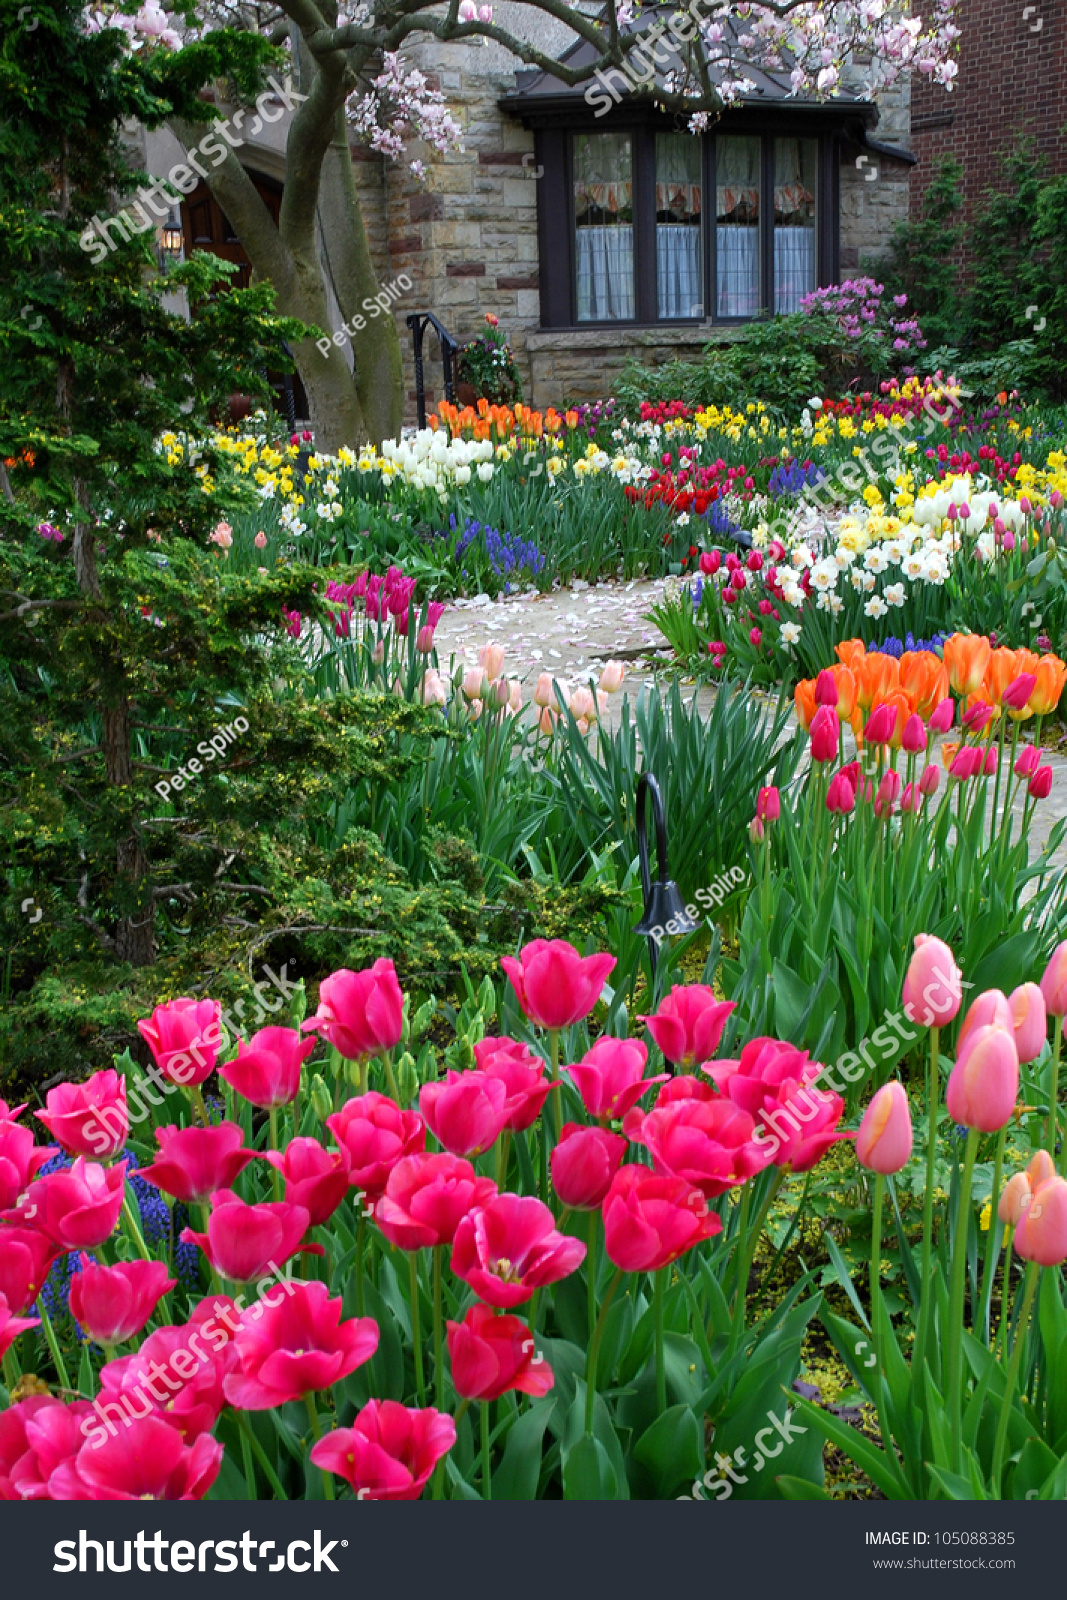 Image Result For How To Start A Perennial Garden